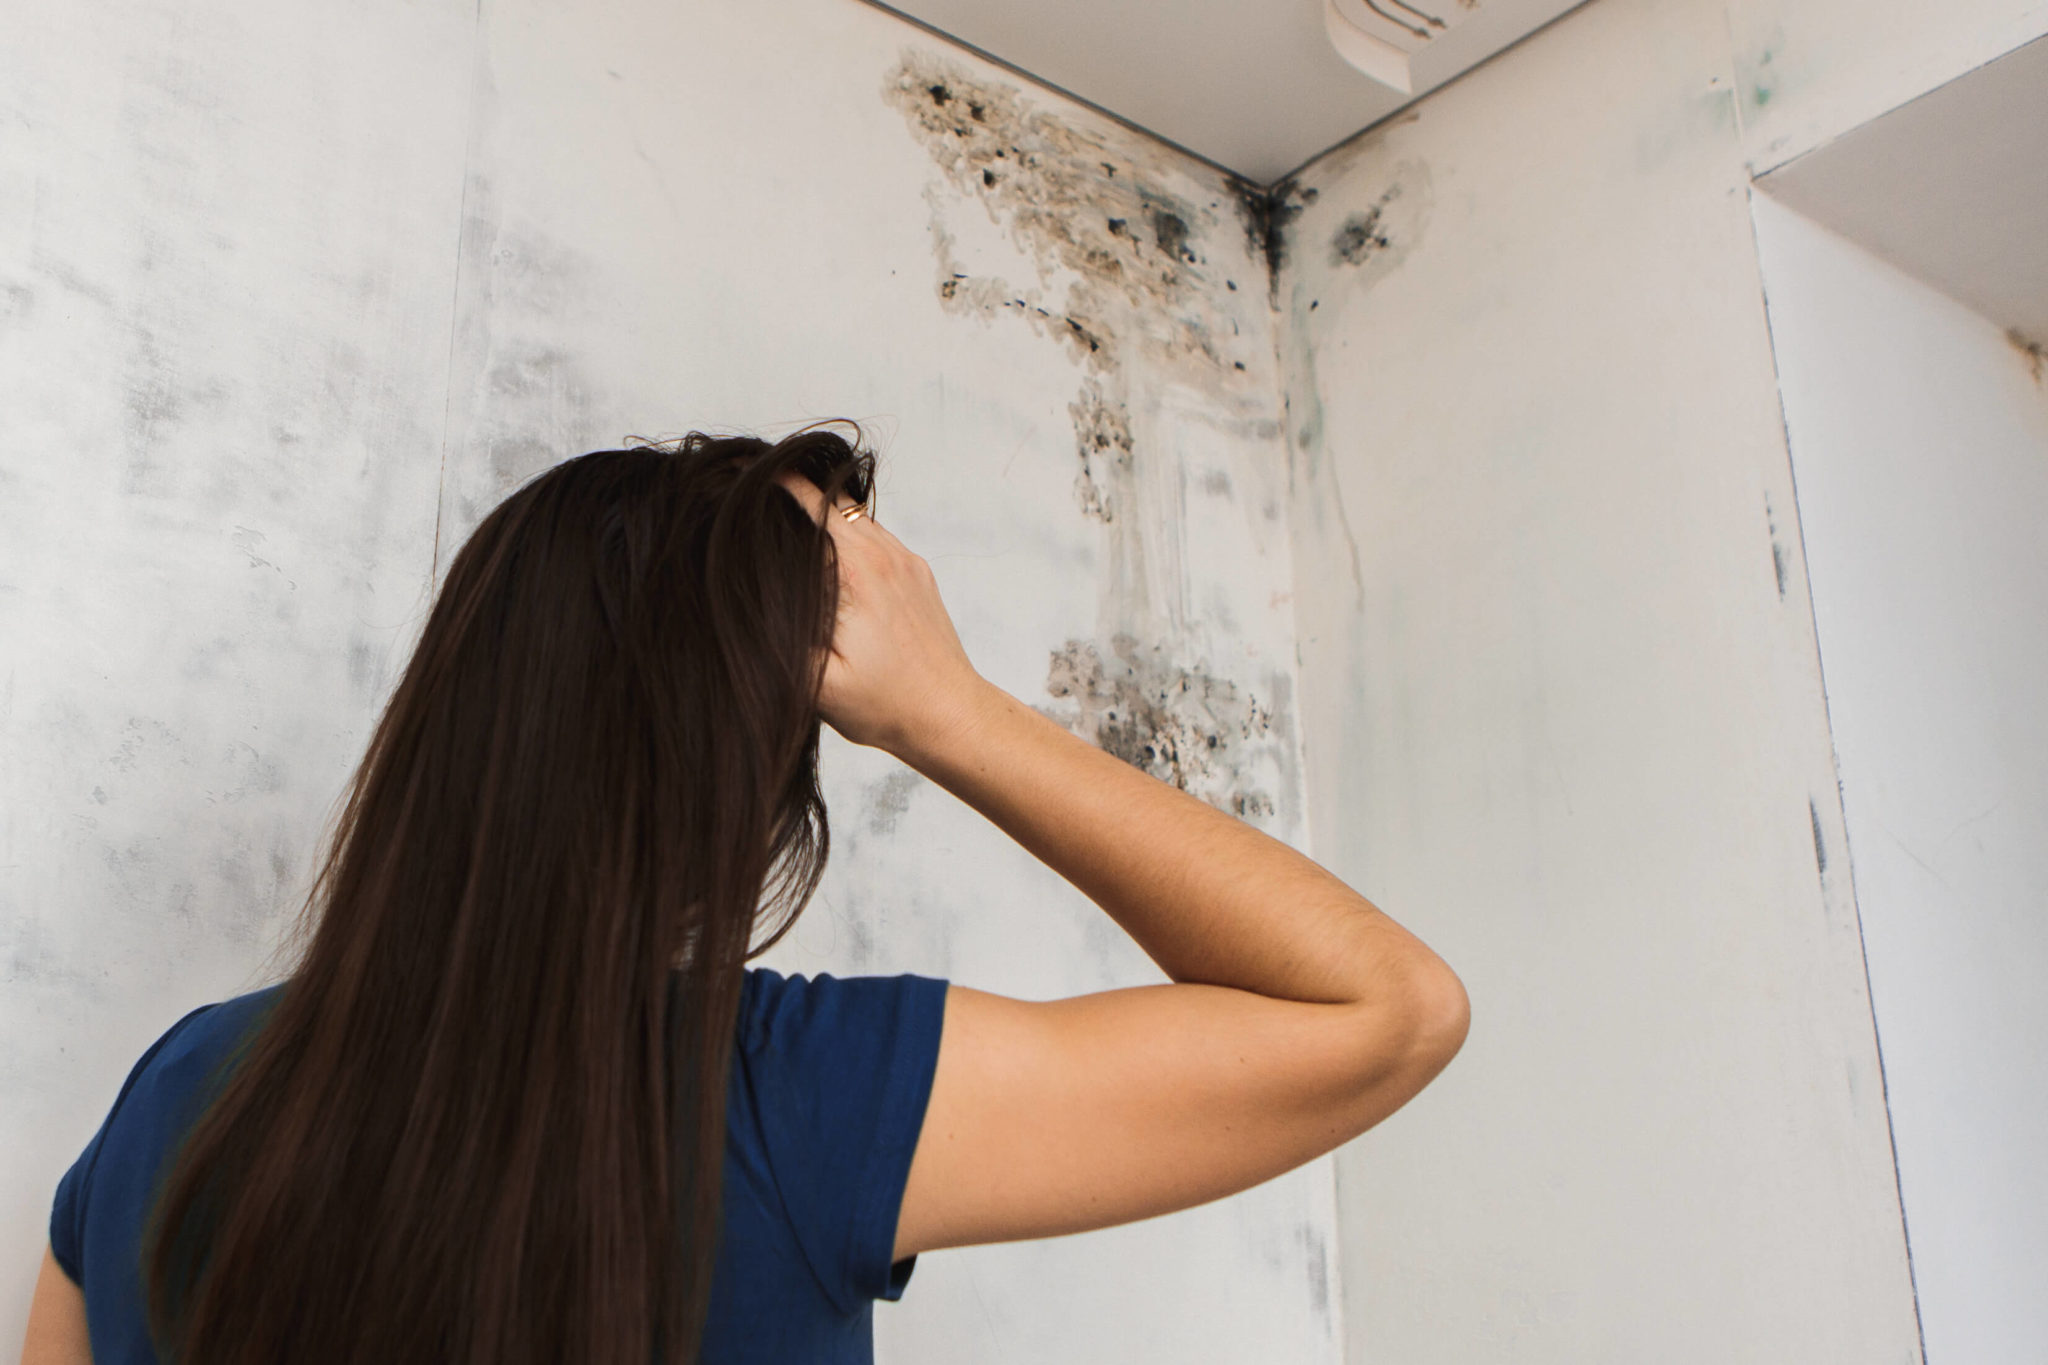 Toxic Black Mold: The Truths (and Myths)